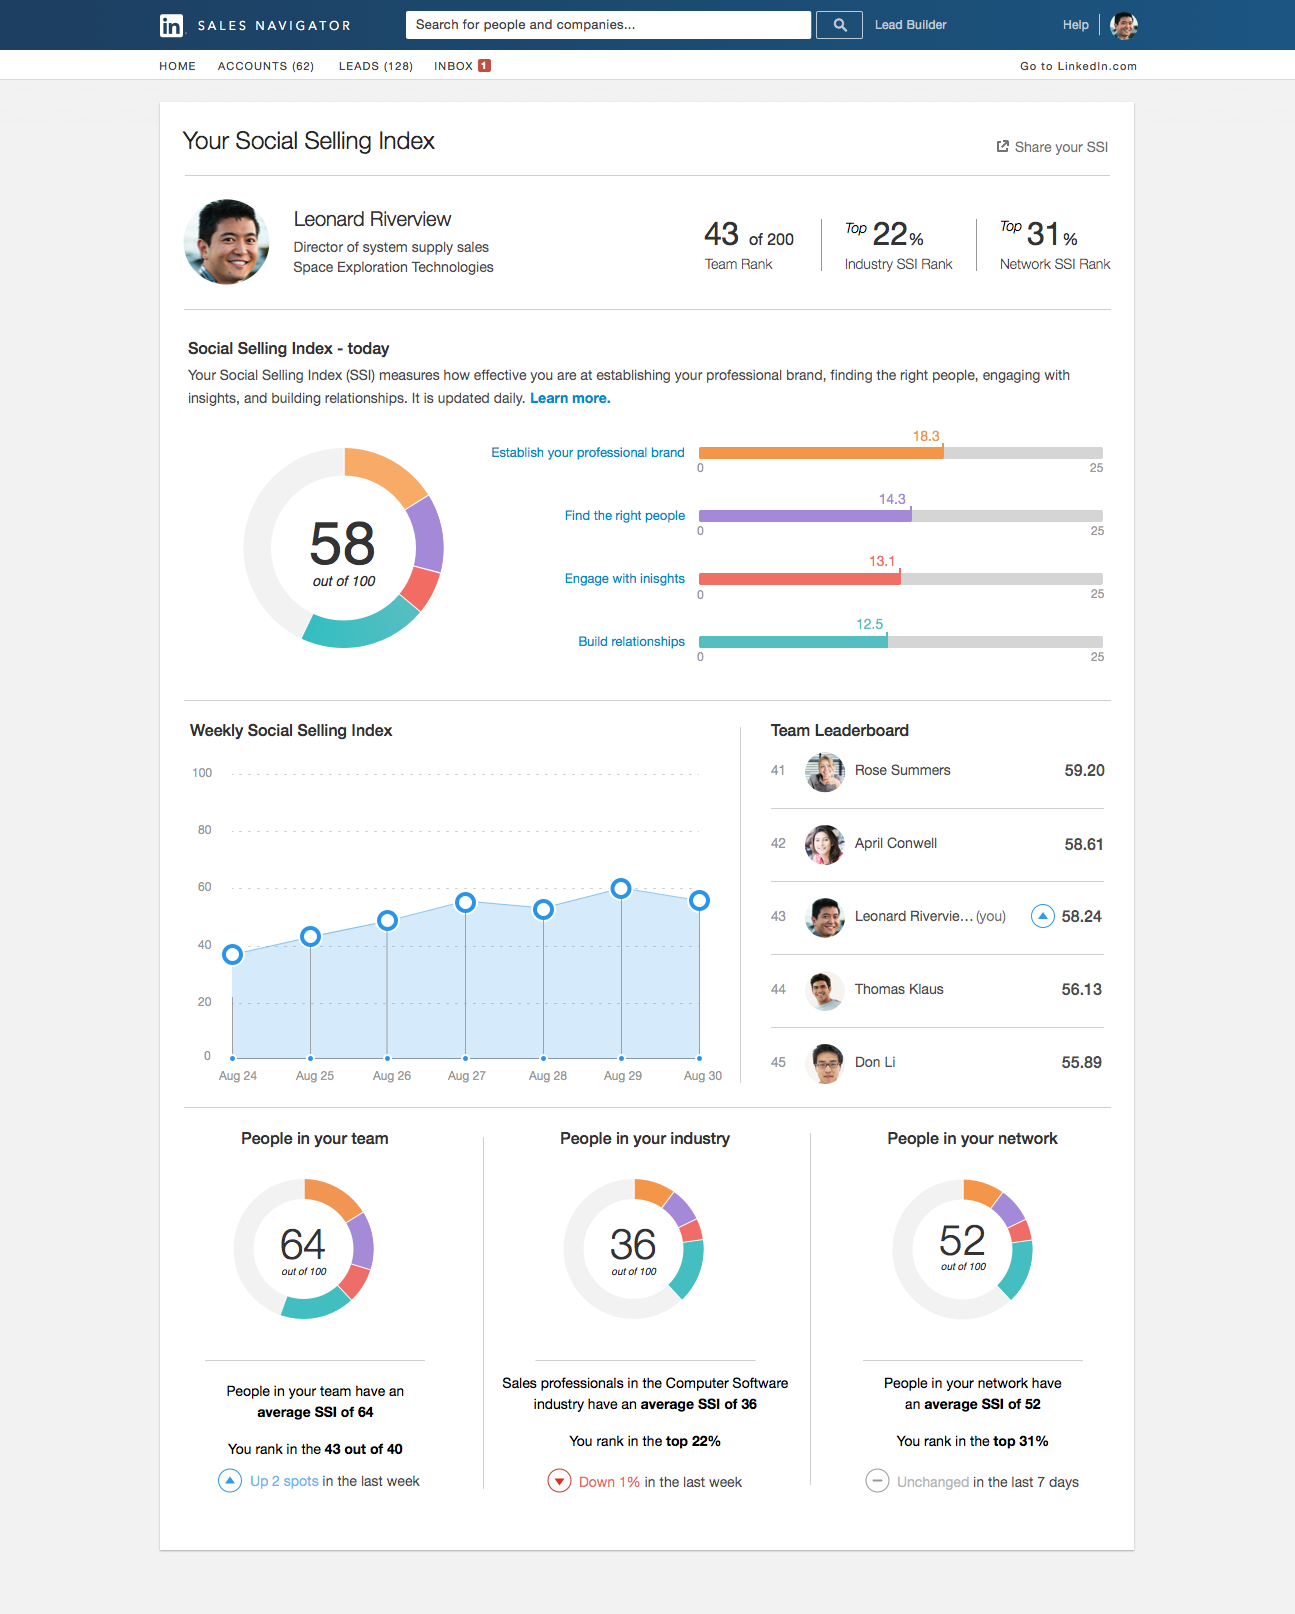 LinkedIn Sales Navigator Demo - Social Selling Index (SSI)